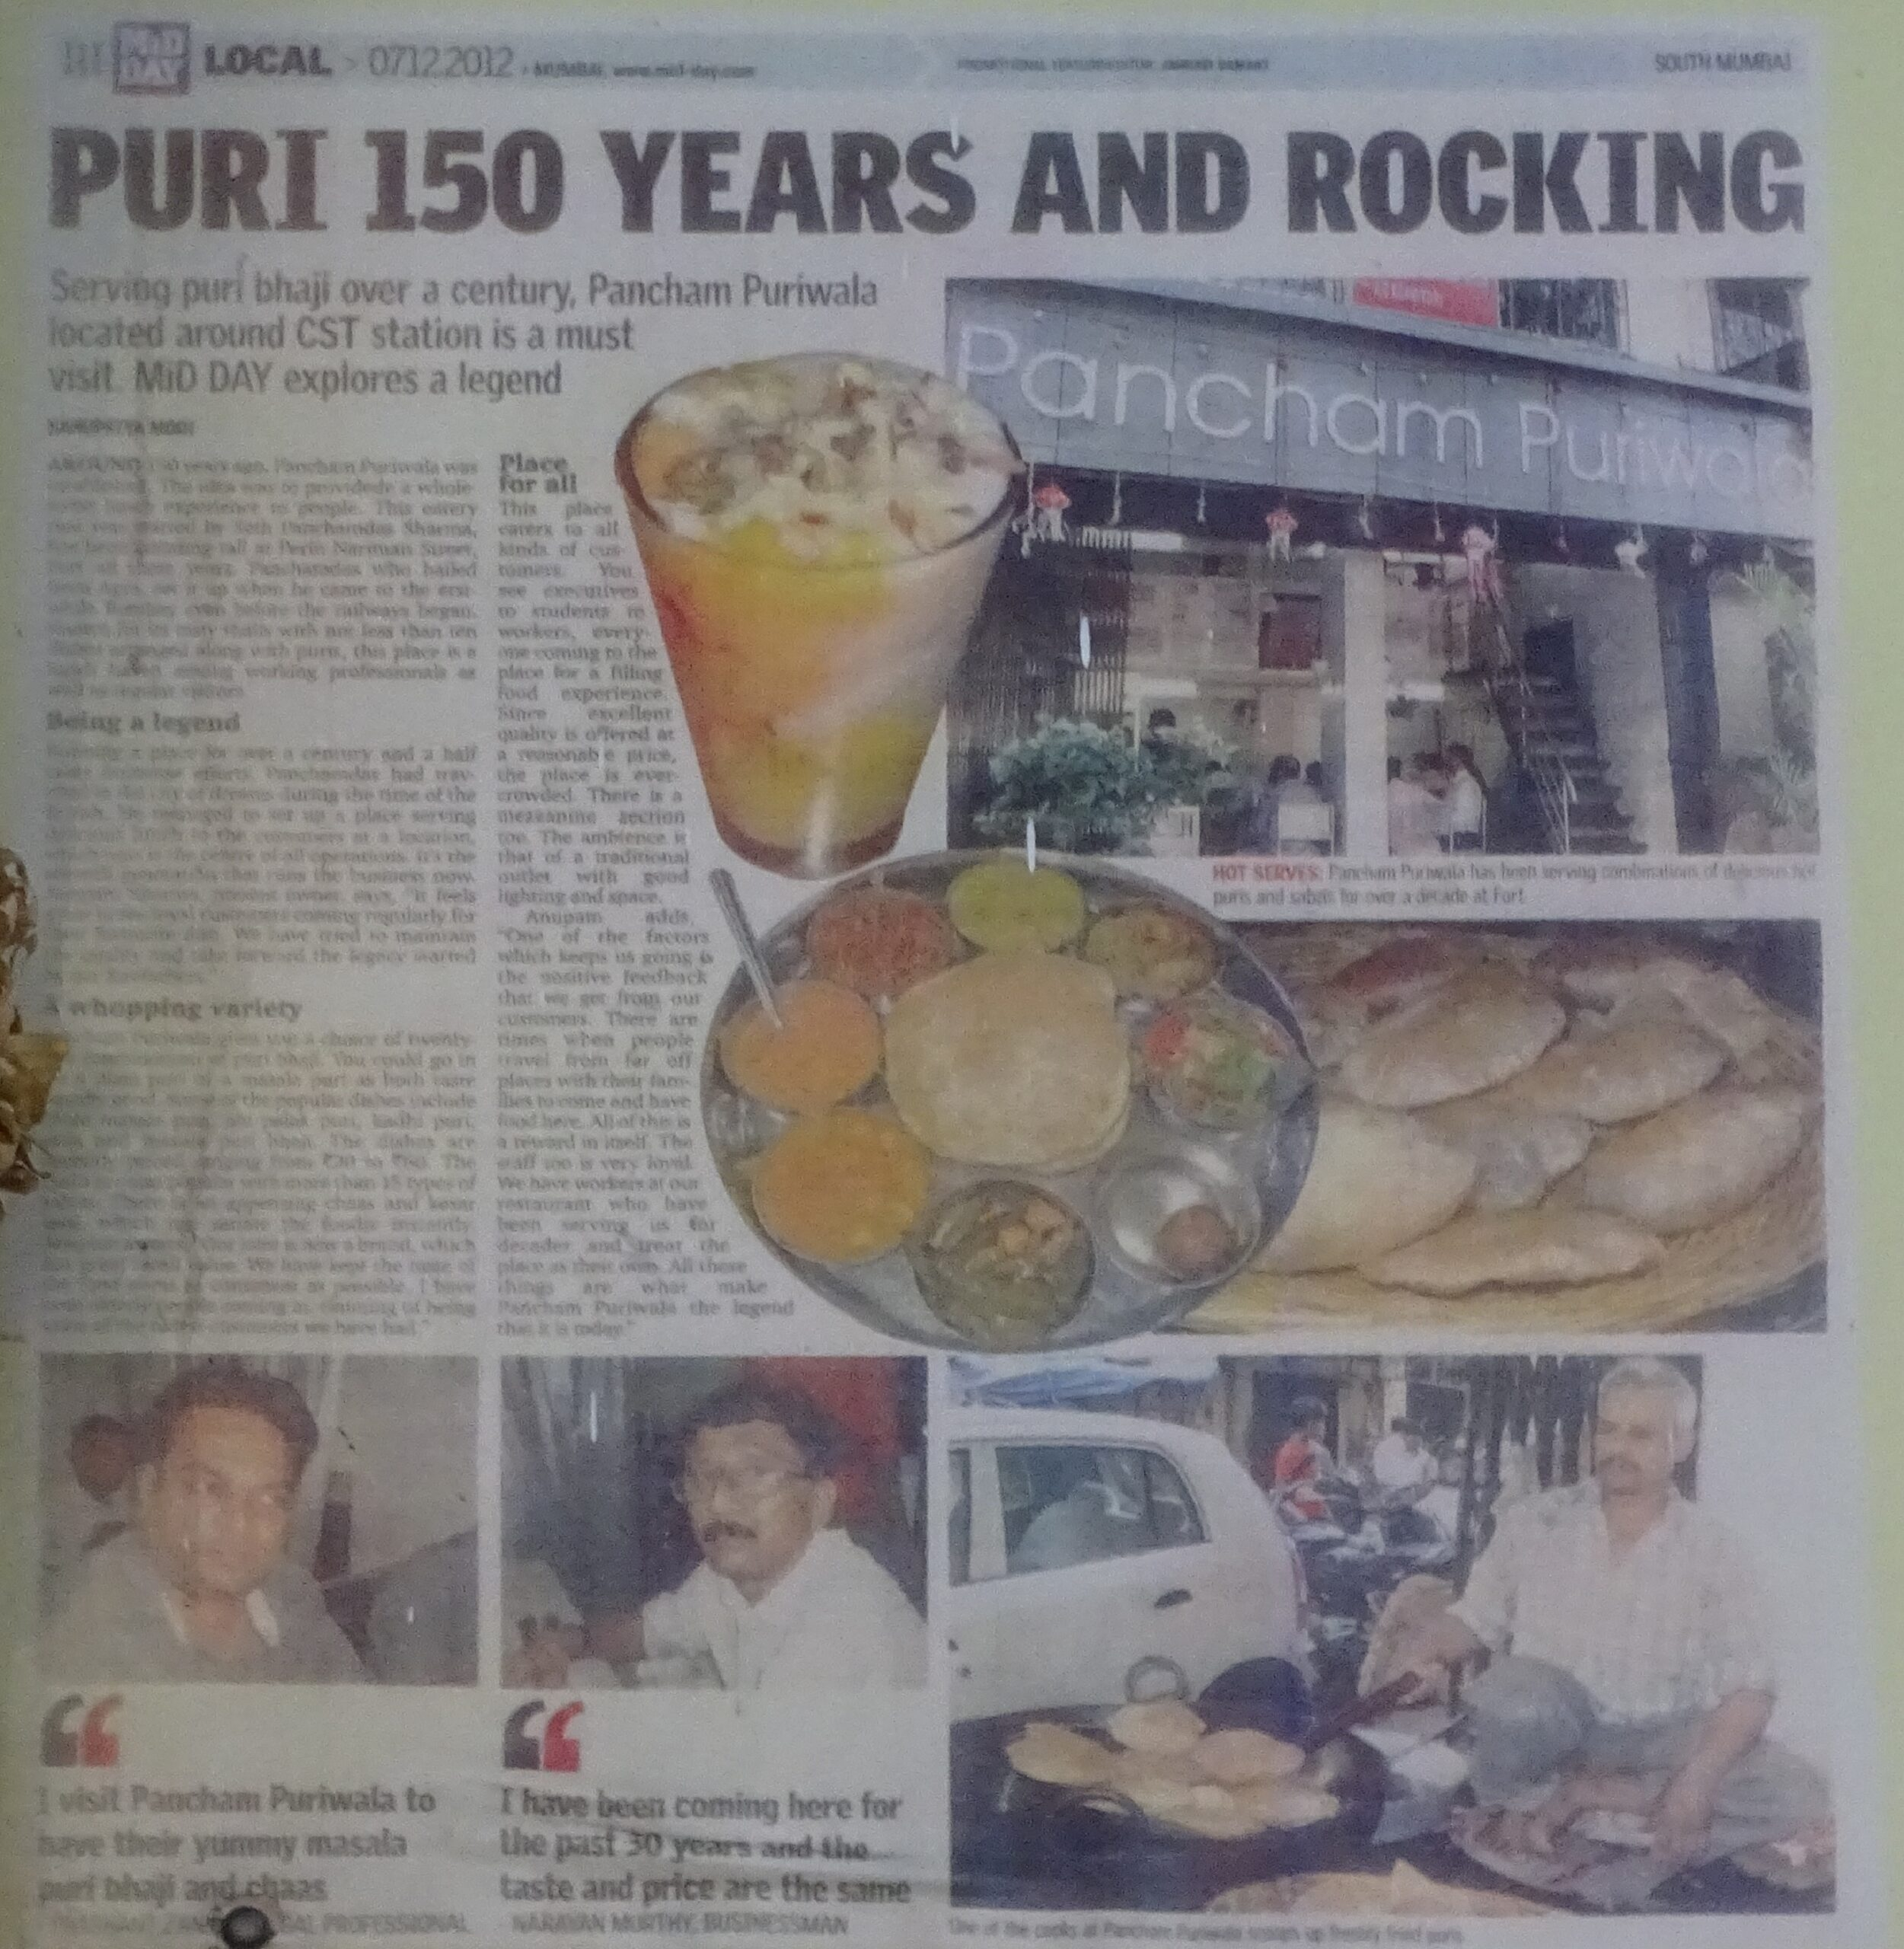 Article on Pancham Puriwala by Mid Day